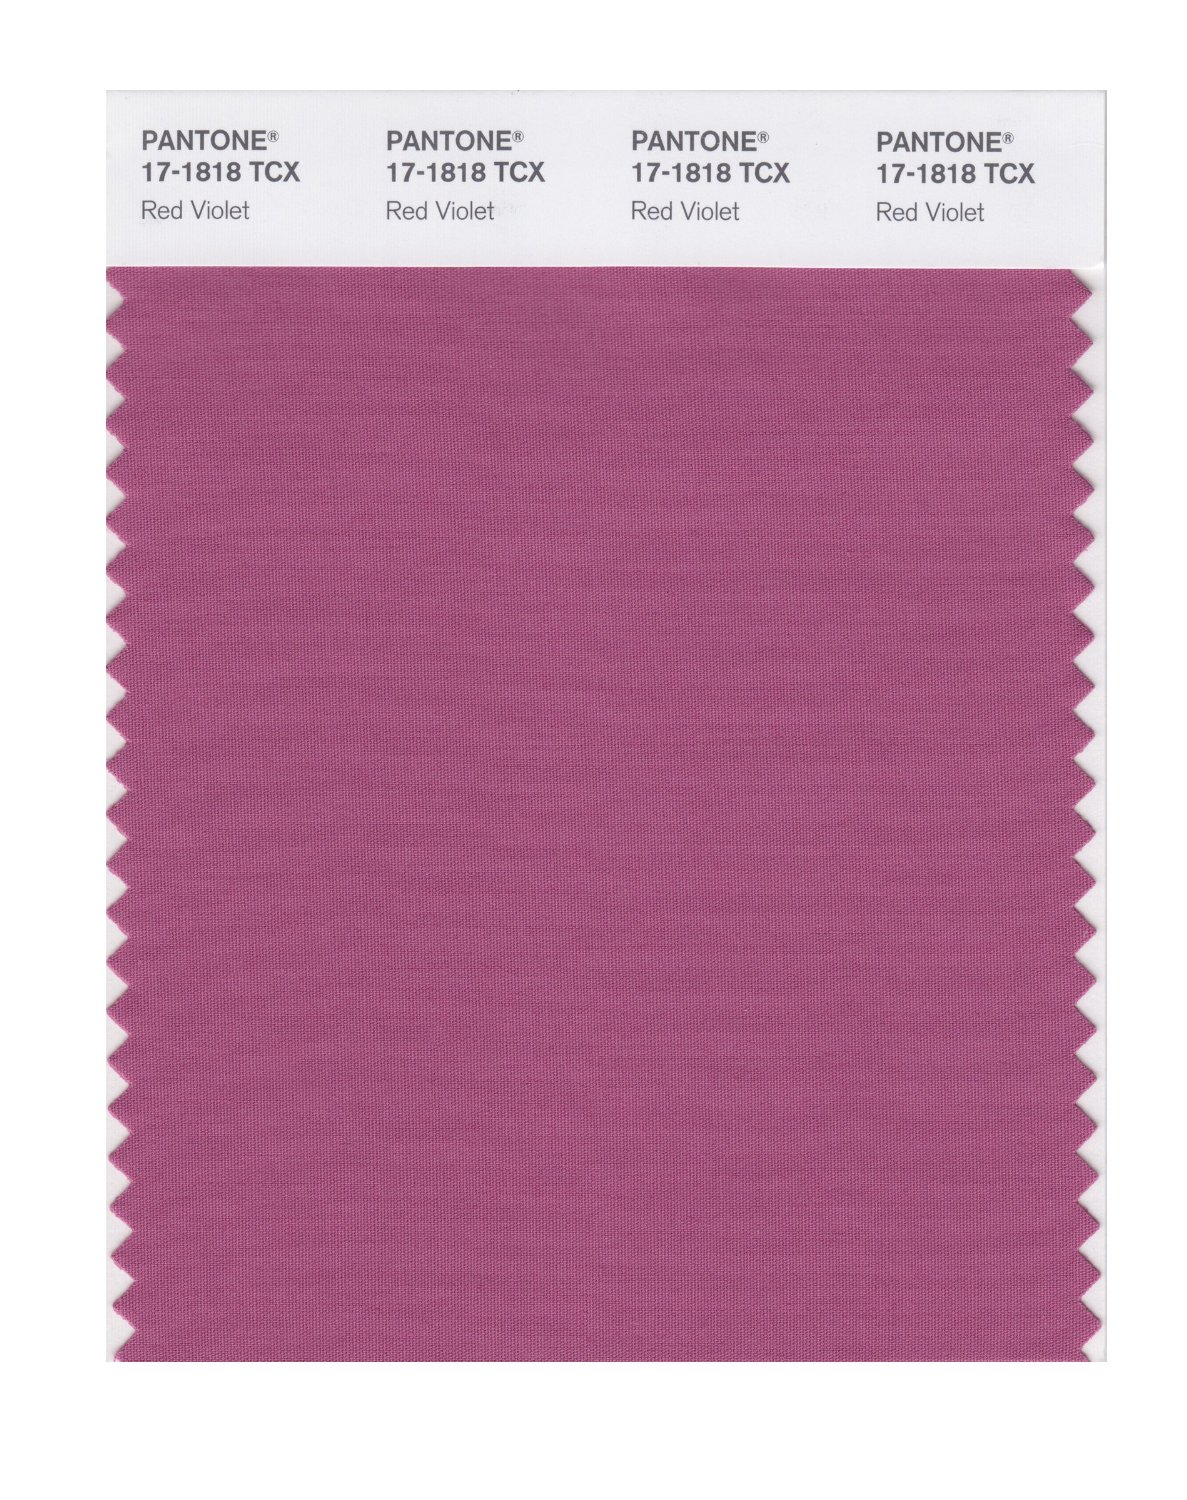 Pantone Smart Swatch 17-1818 Red Violet